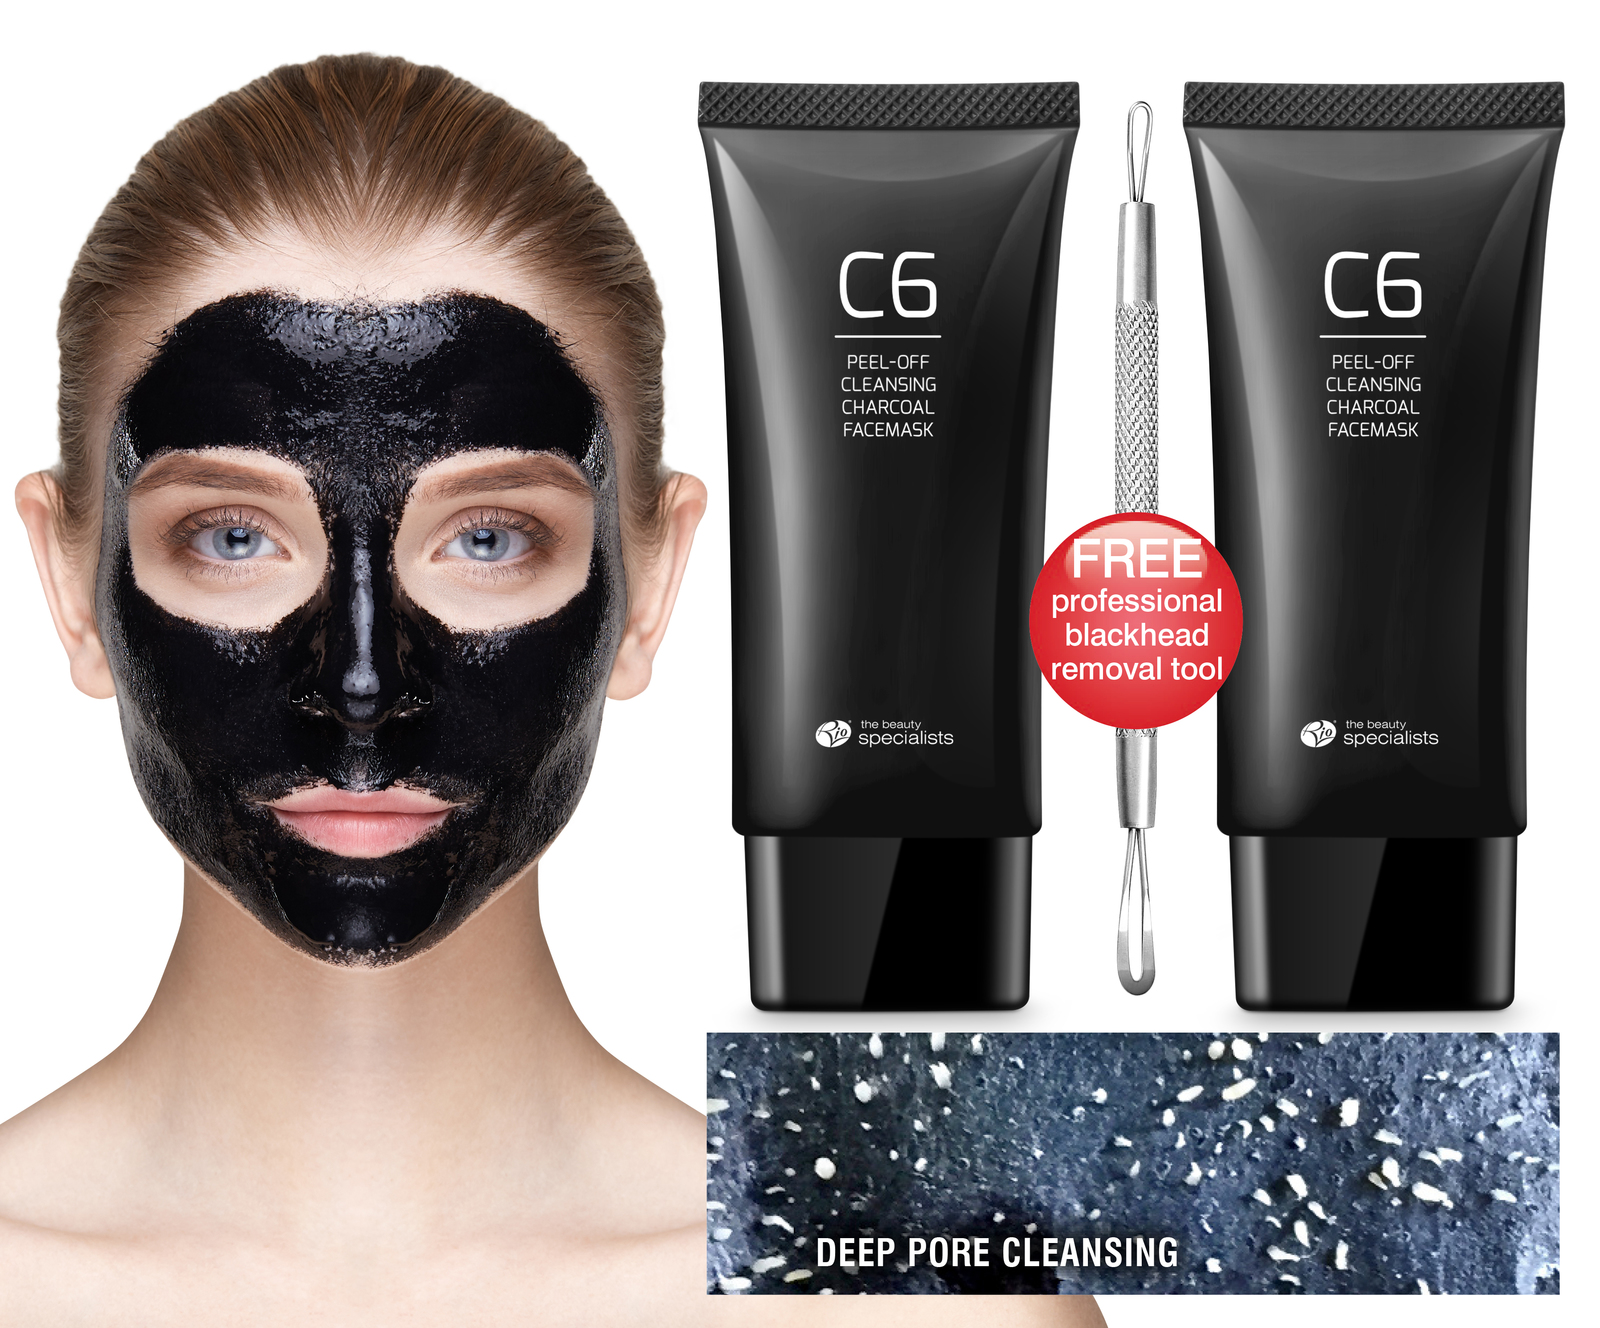 Blackhead Removal And Pore Cleaning Peel Off Charcoal Face Mask image